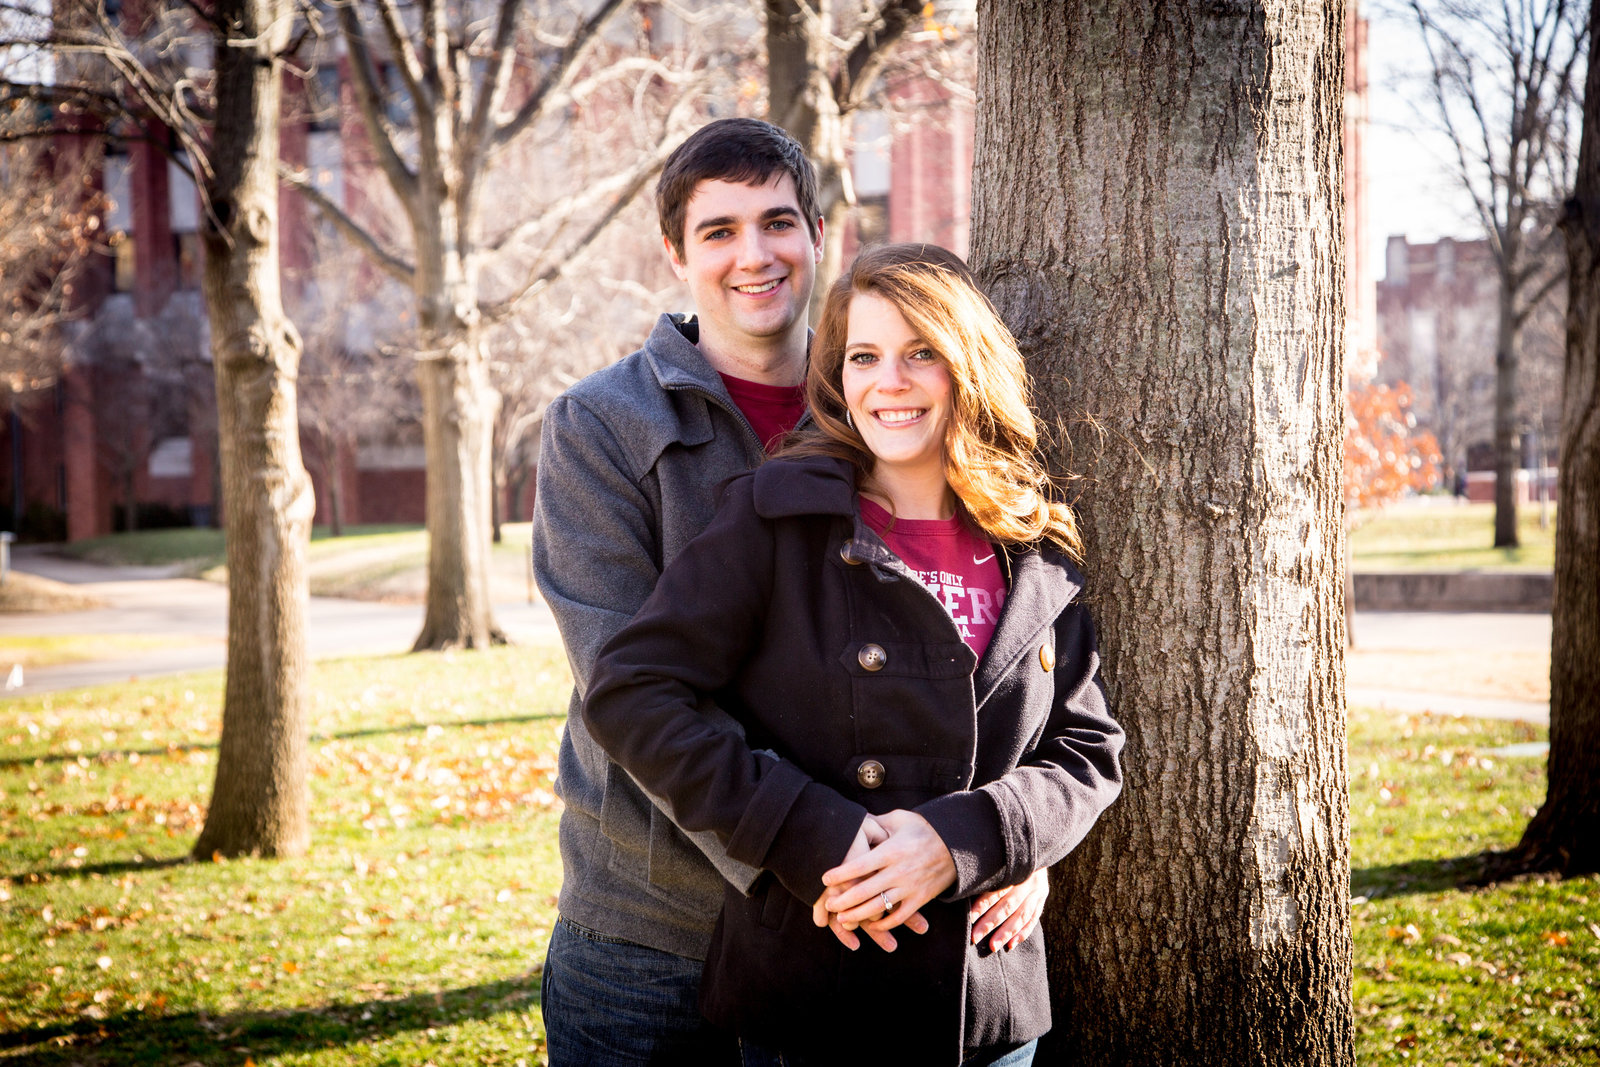 Oklahoma-sooners-campus-engagement-session-405-brides-photography